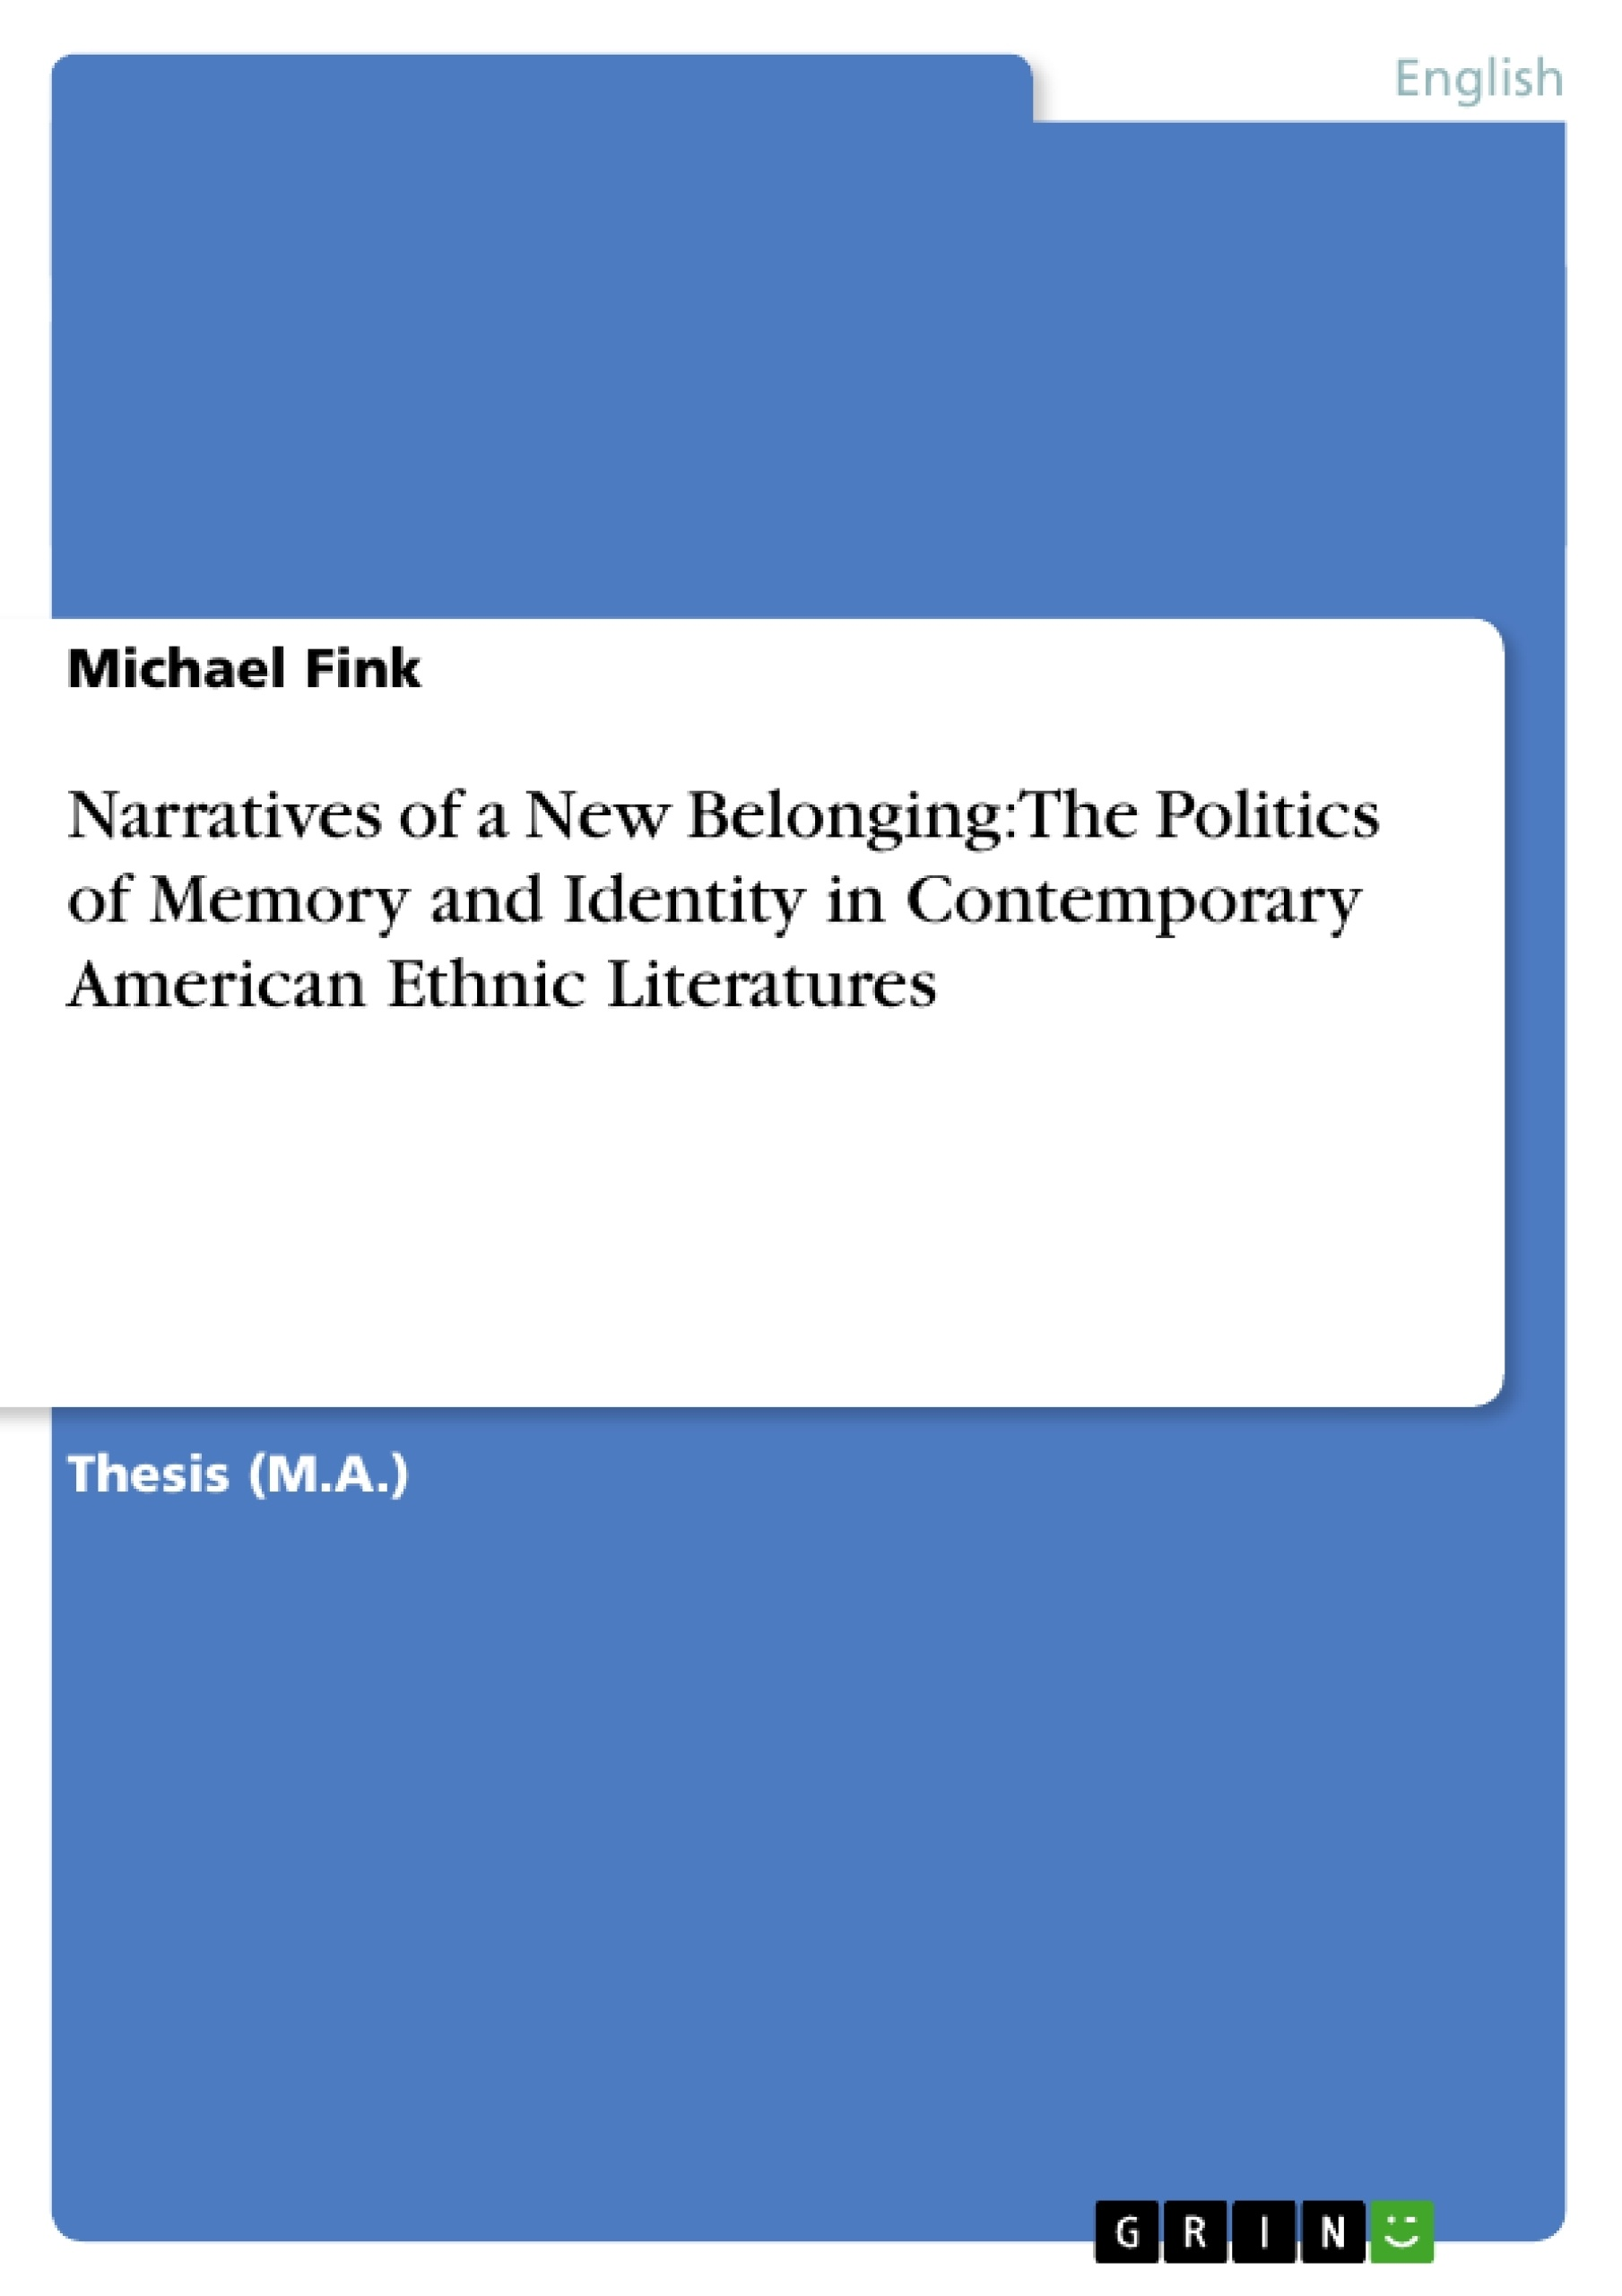 Title: Narratives of a New Belonging: The Politics of Memory and Identity in Contemporary American Ethnic Literatures